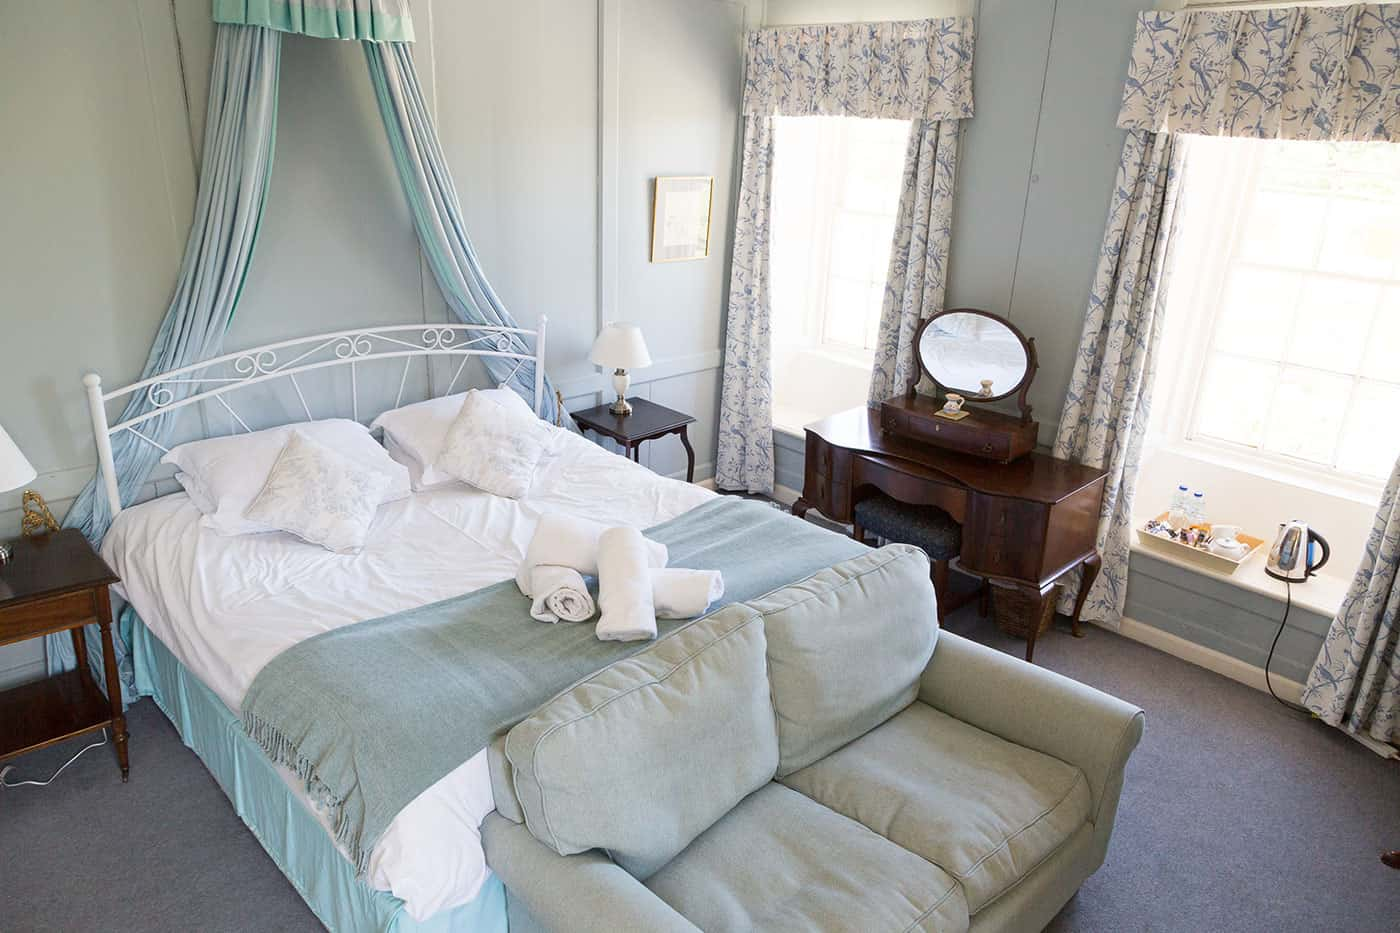 trereife_penzance_cornwall_bed_and_breakfast_coleridge-(20-of-25)